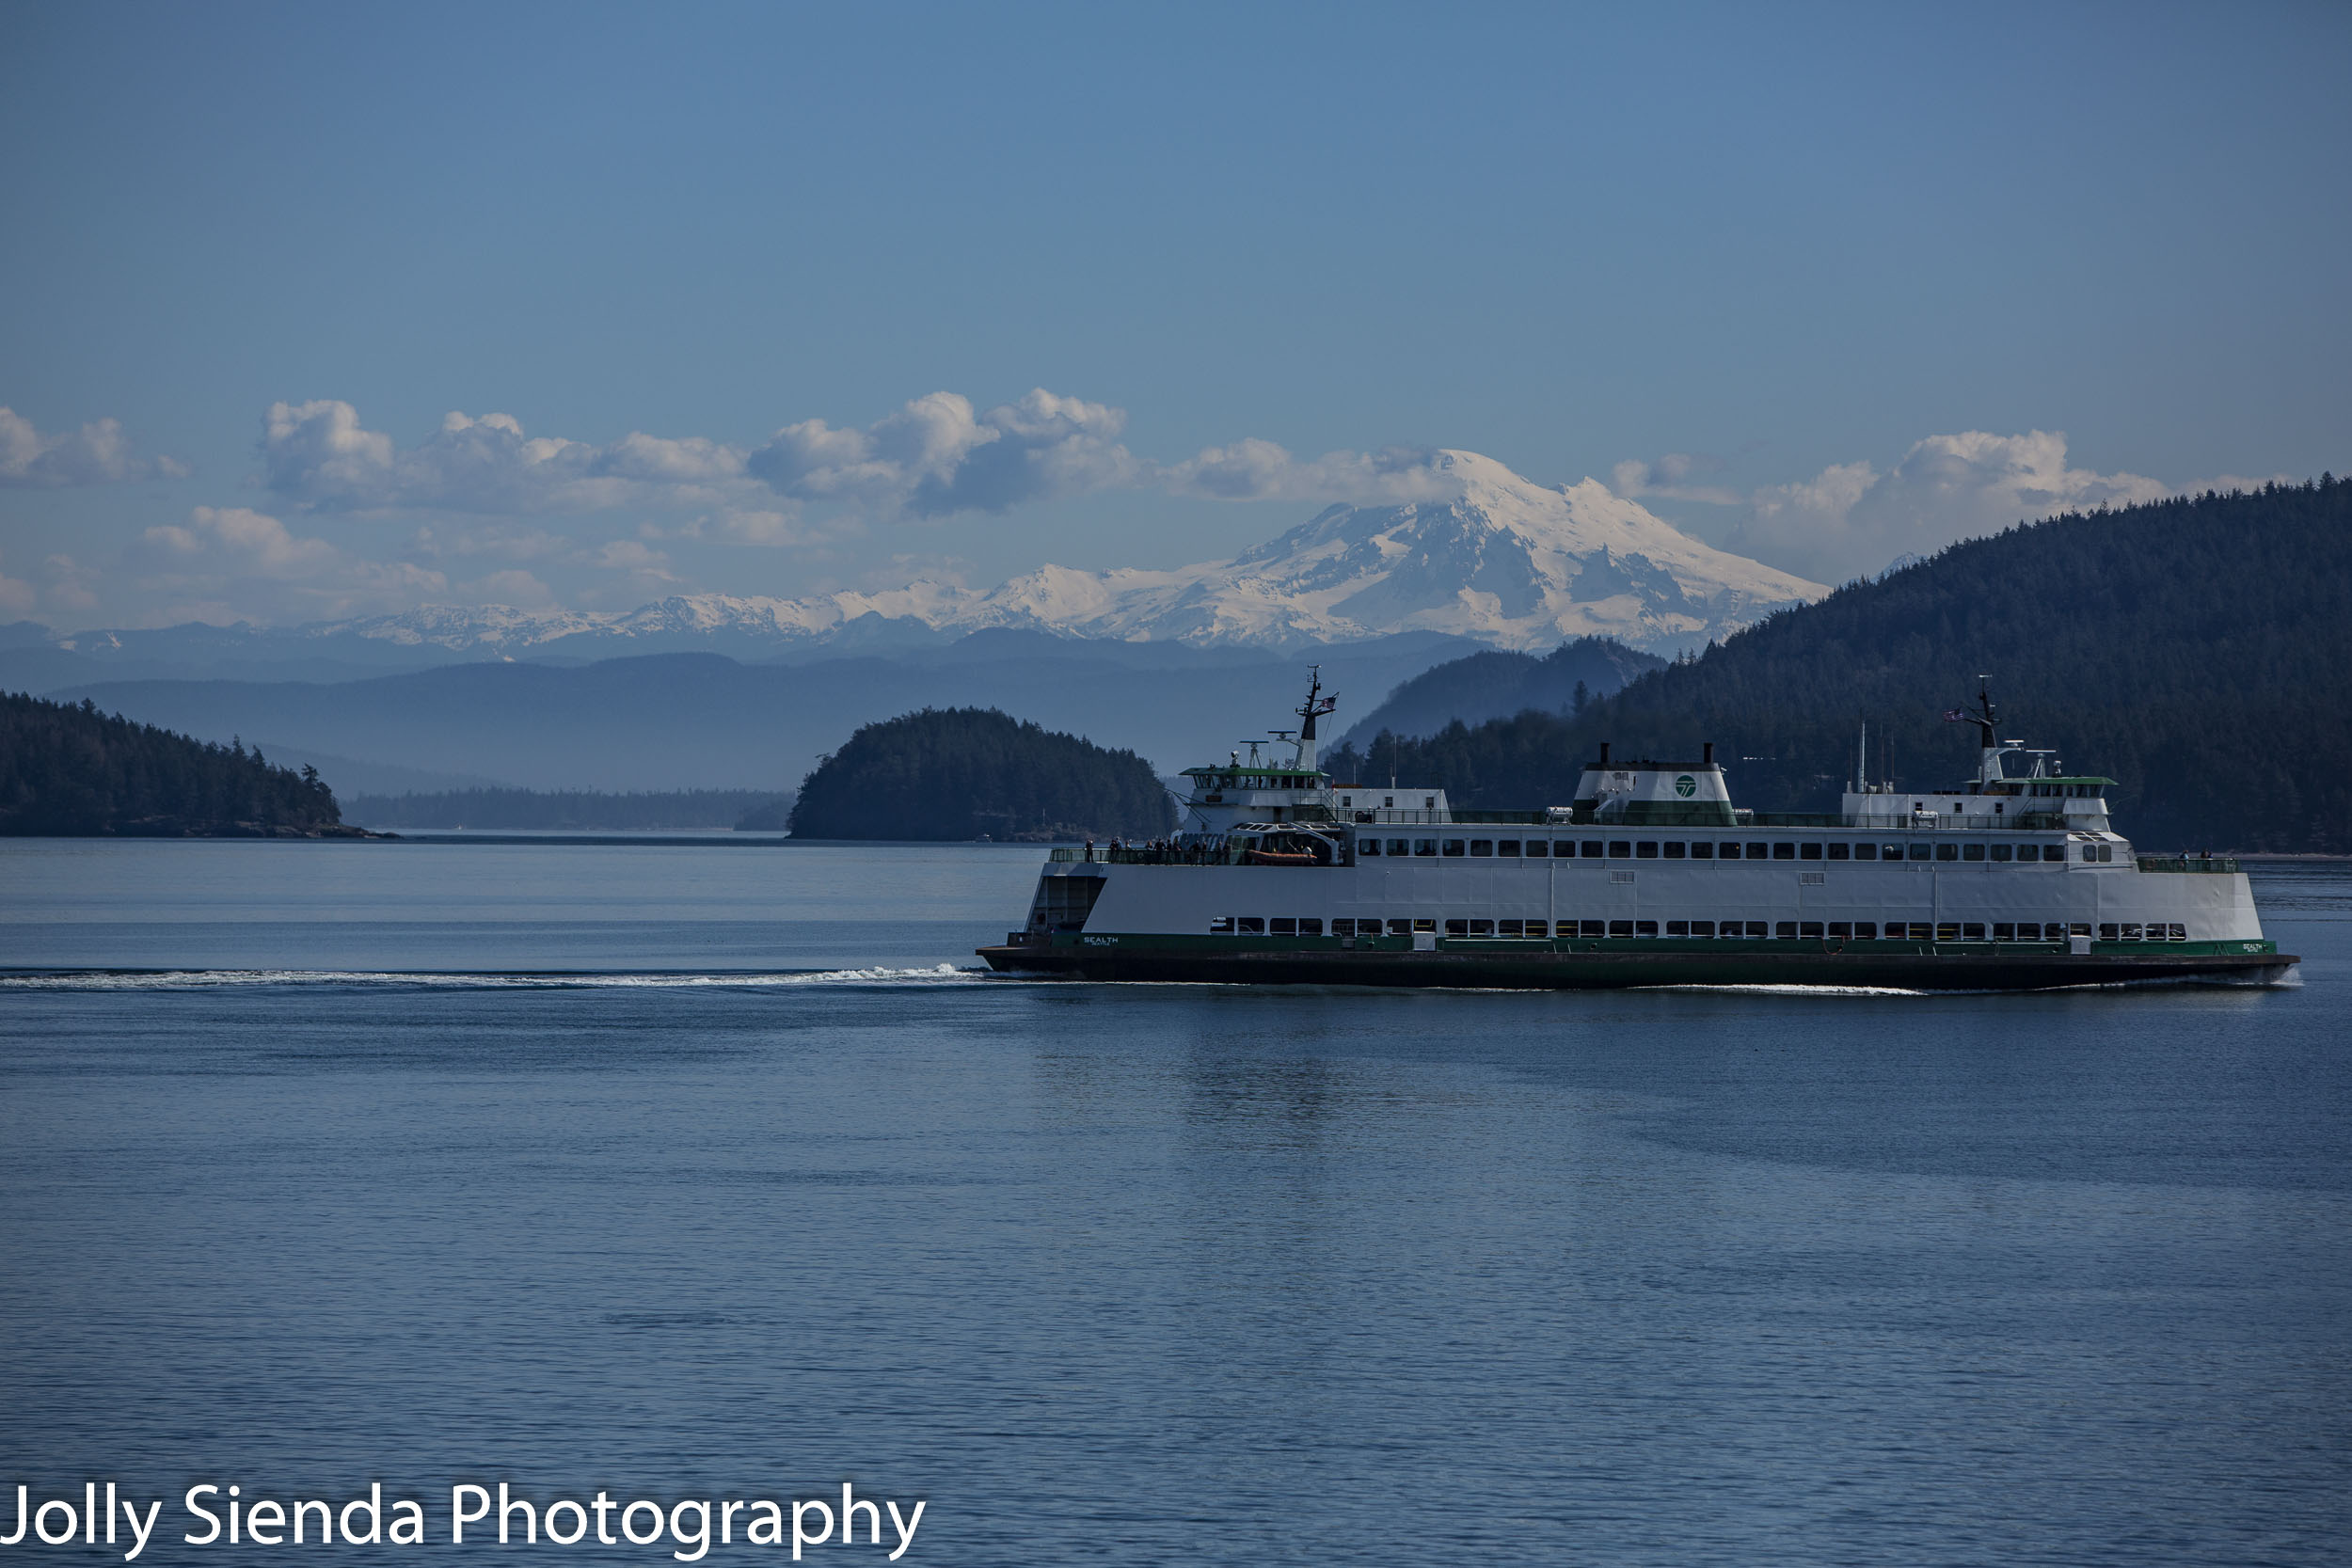 Washington State Ferry sailings in the San Juan Islands with Mount Baker in the background.